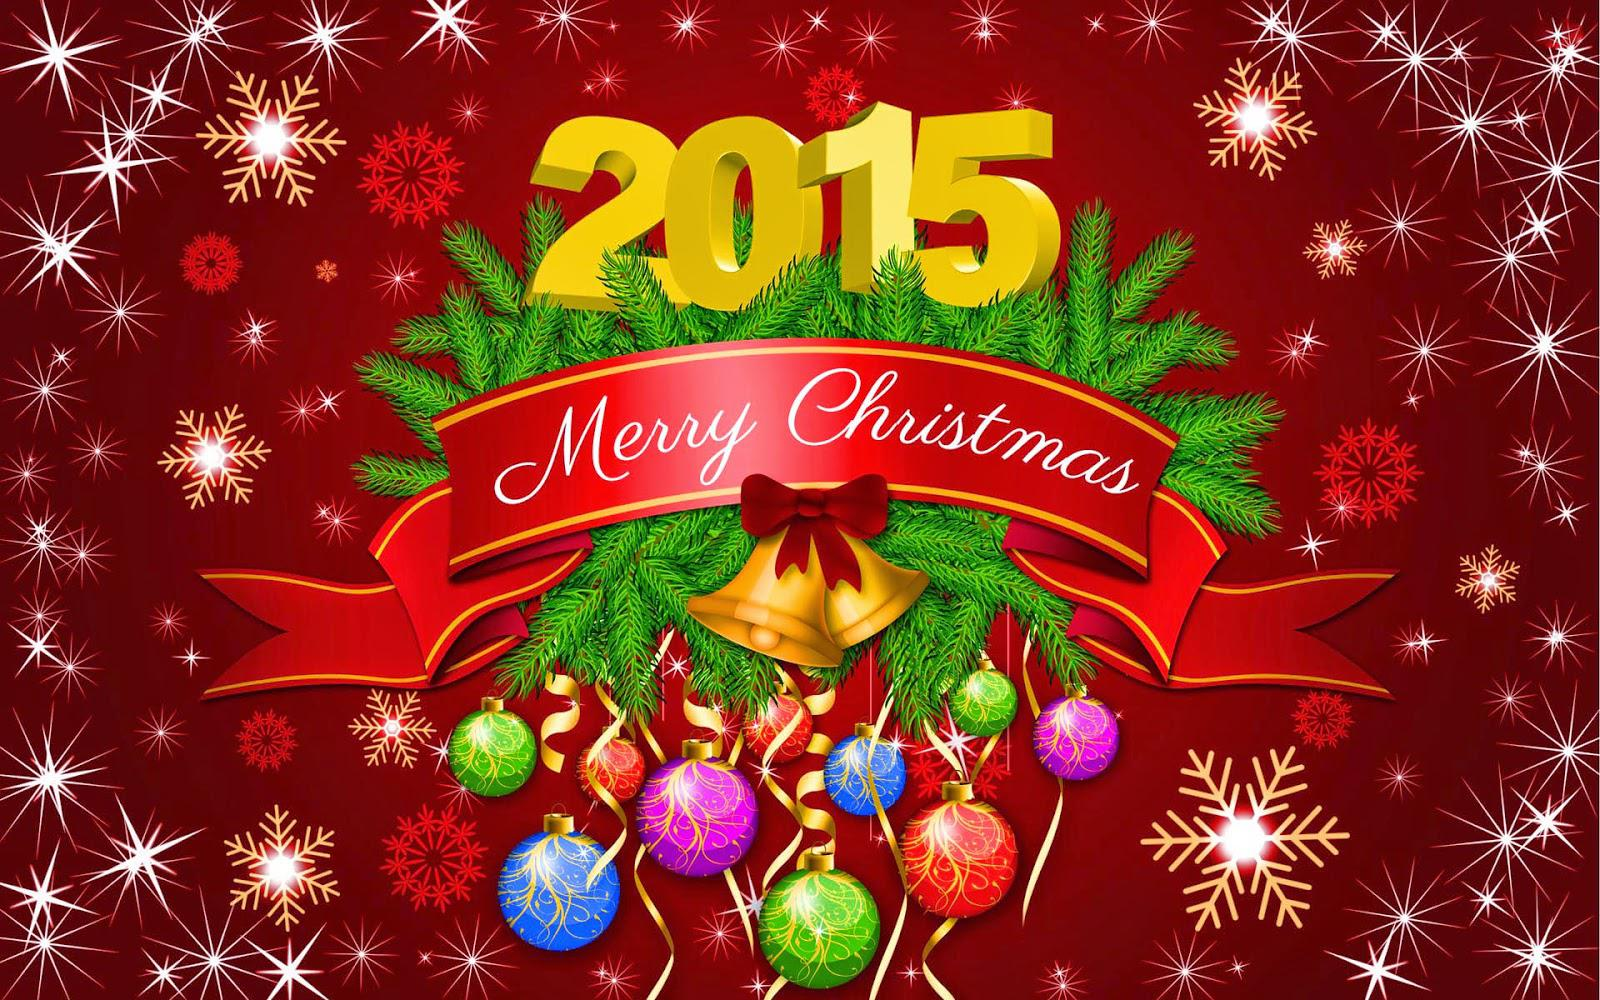 Merry Christmas Decoration 2015 Wallpaper